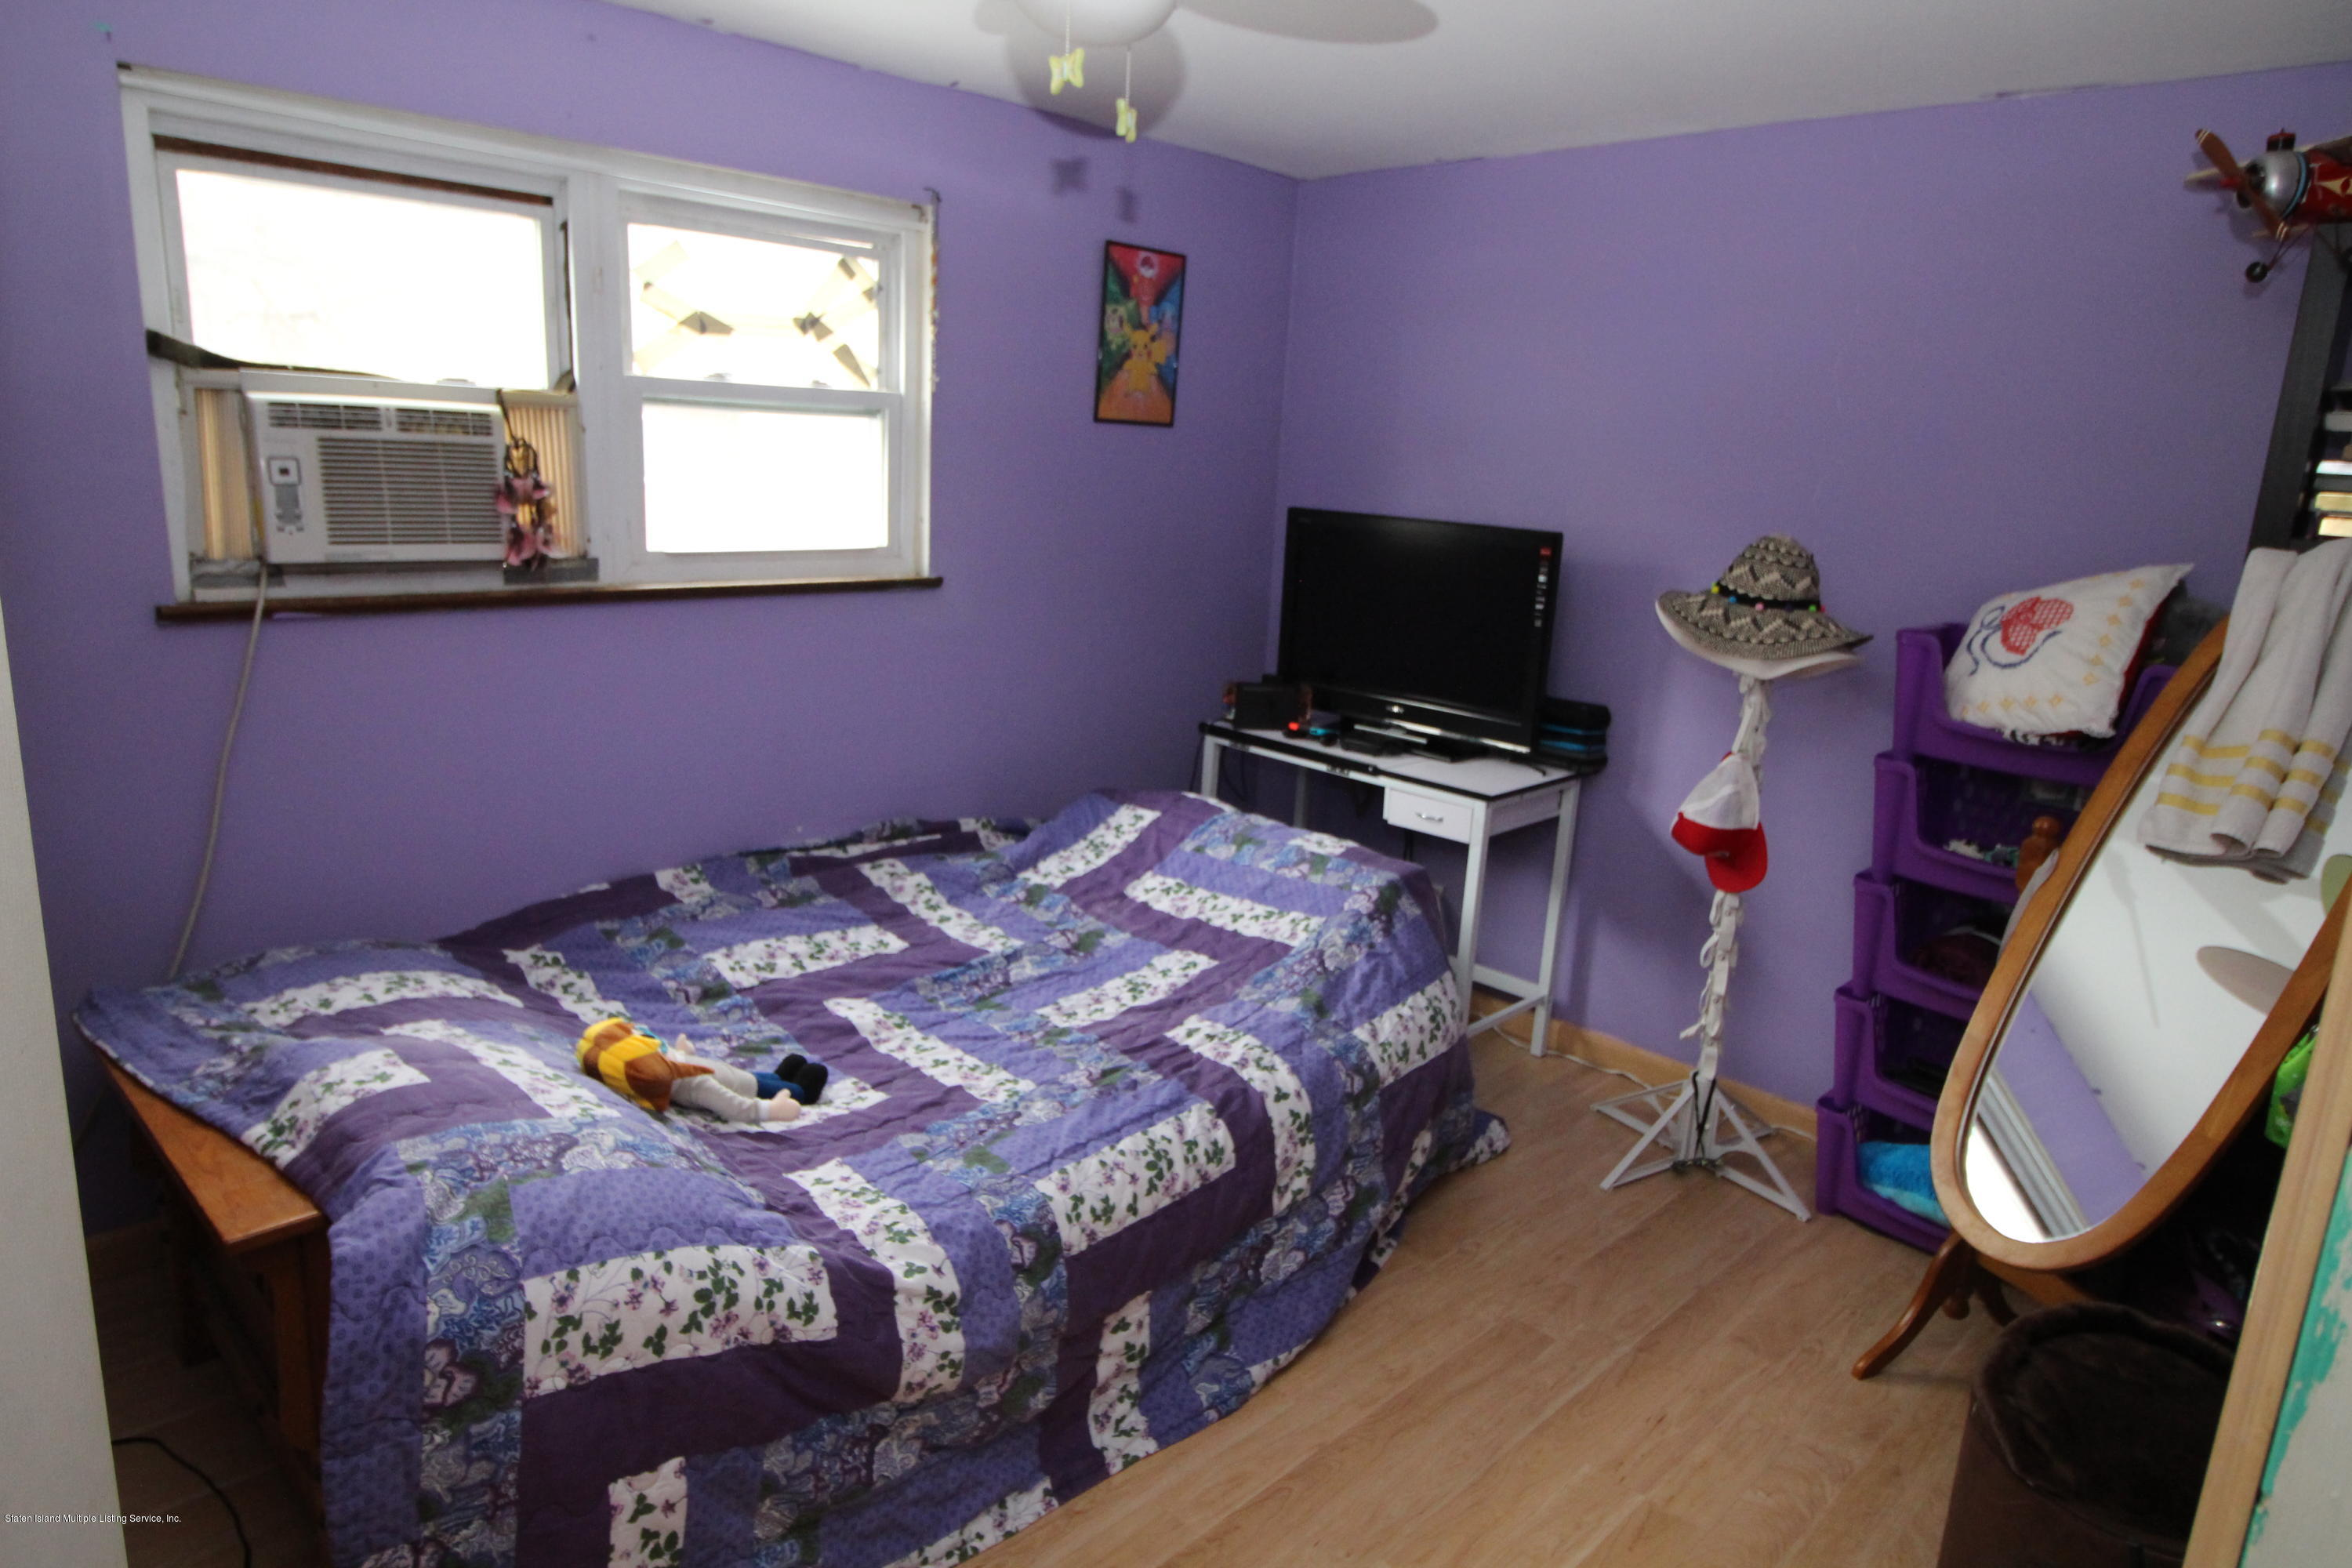 Single Family - Semi-Attached 48 Mulberry Avenue  Staten Island, NY 10314, MLS-1126171-13